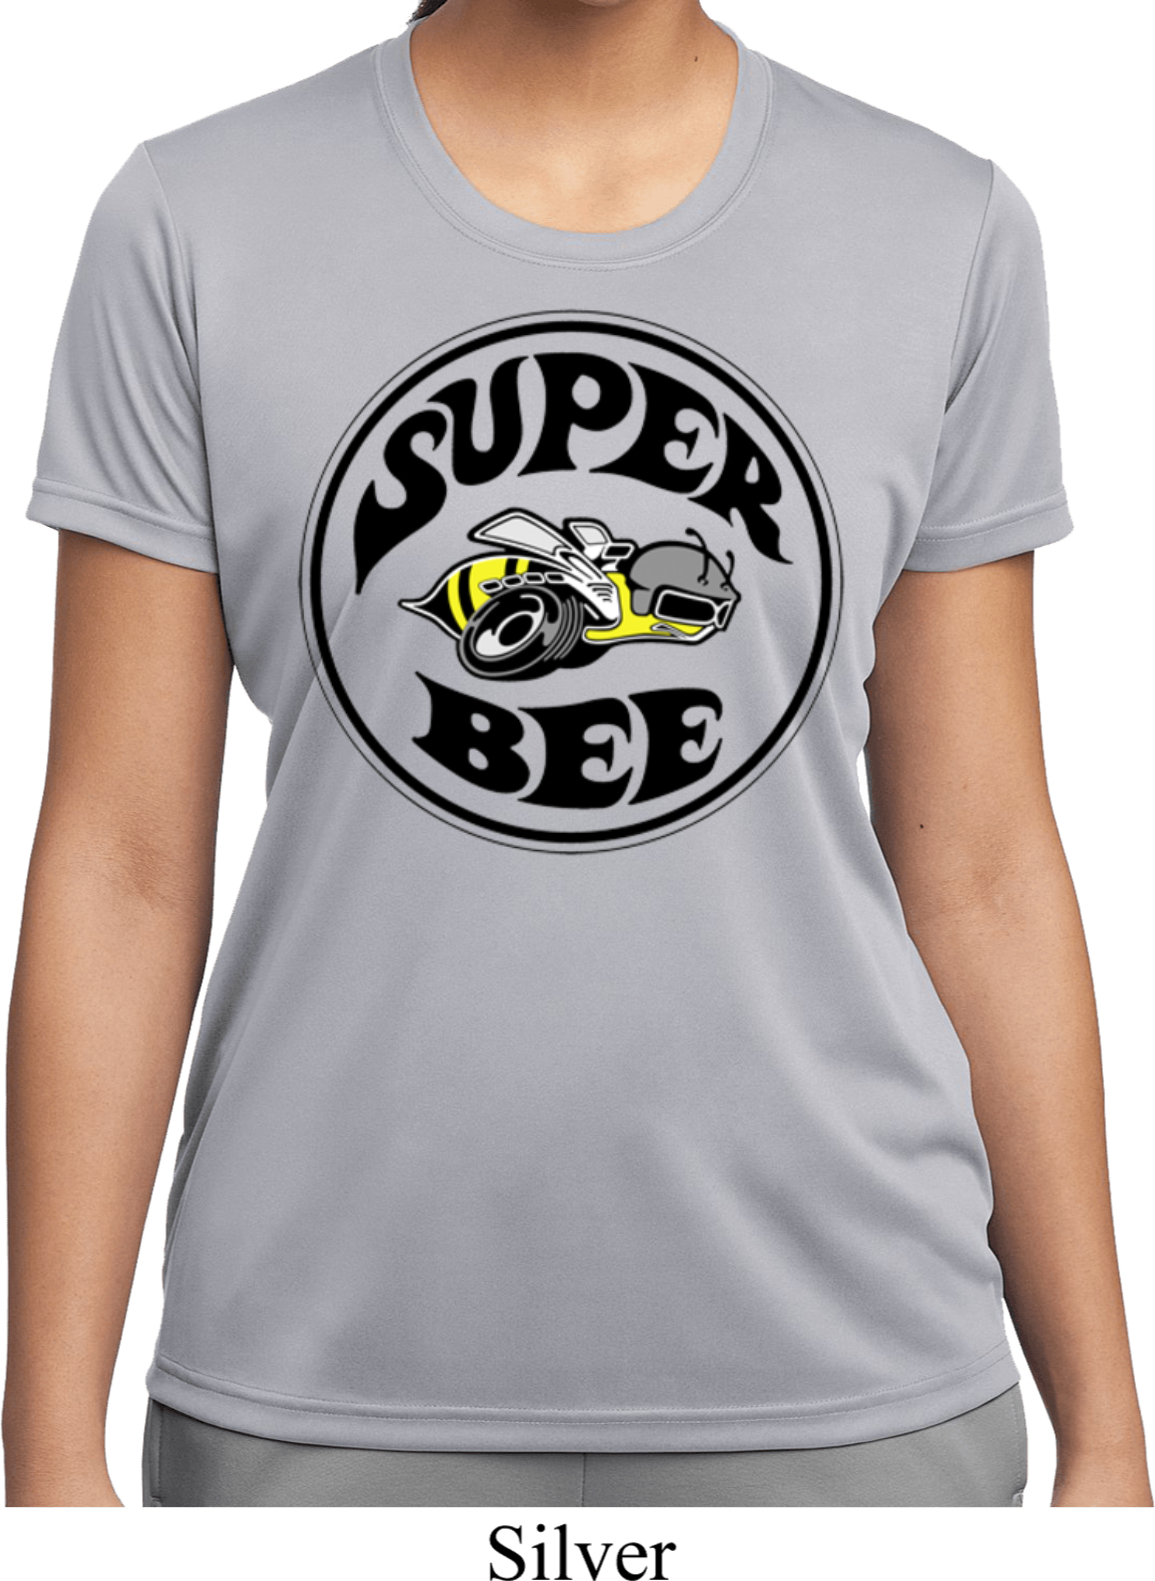 Ladies dodge shirt super bee moisture wicking tee t shirt for Sweat wicking t shirts